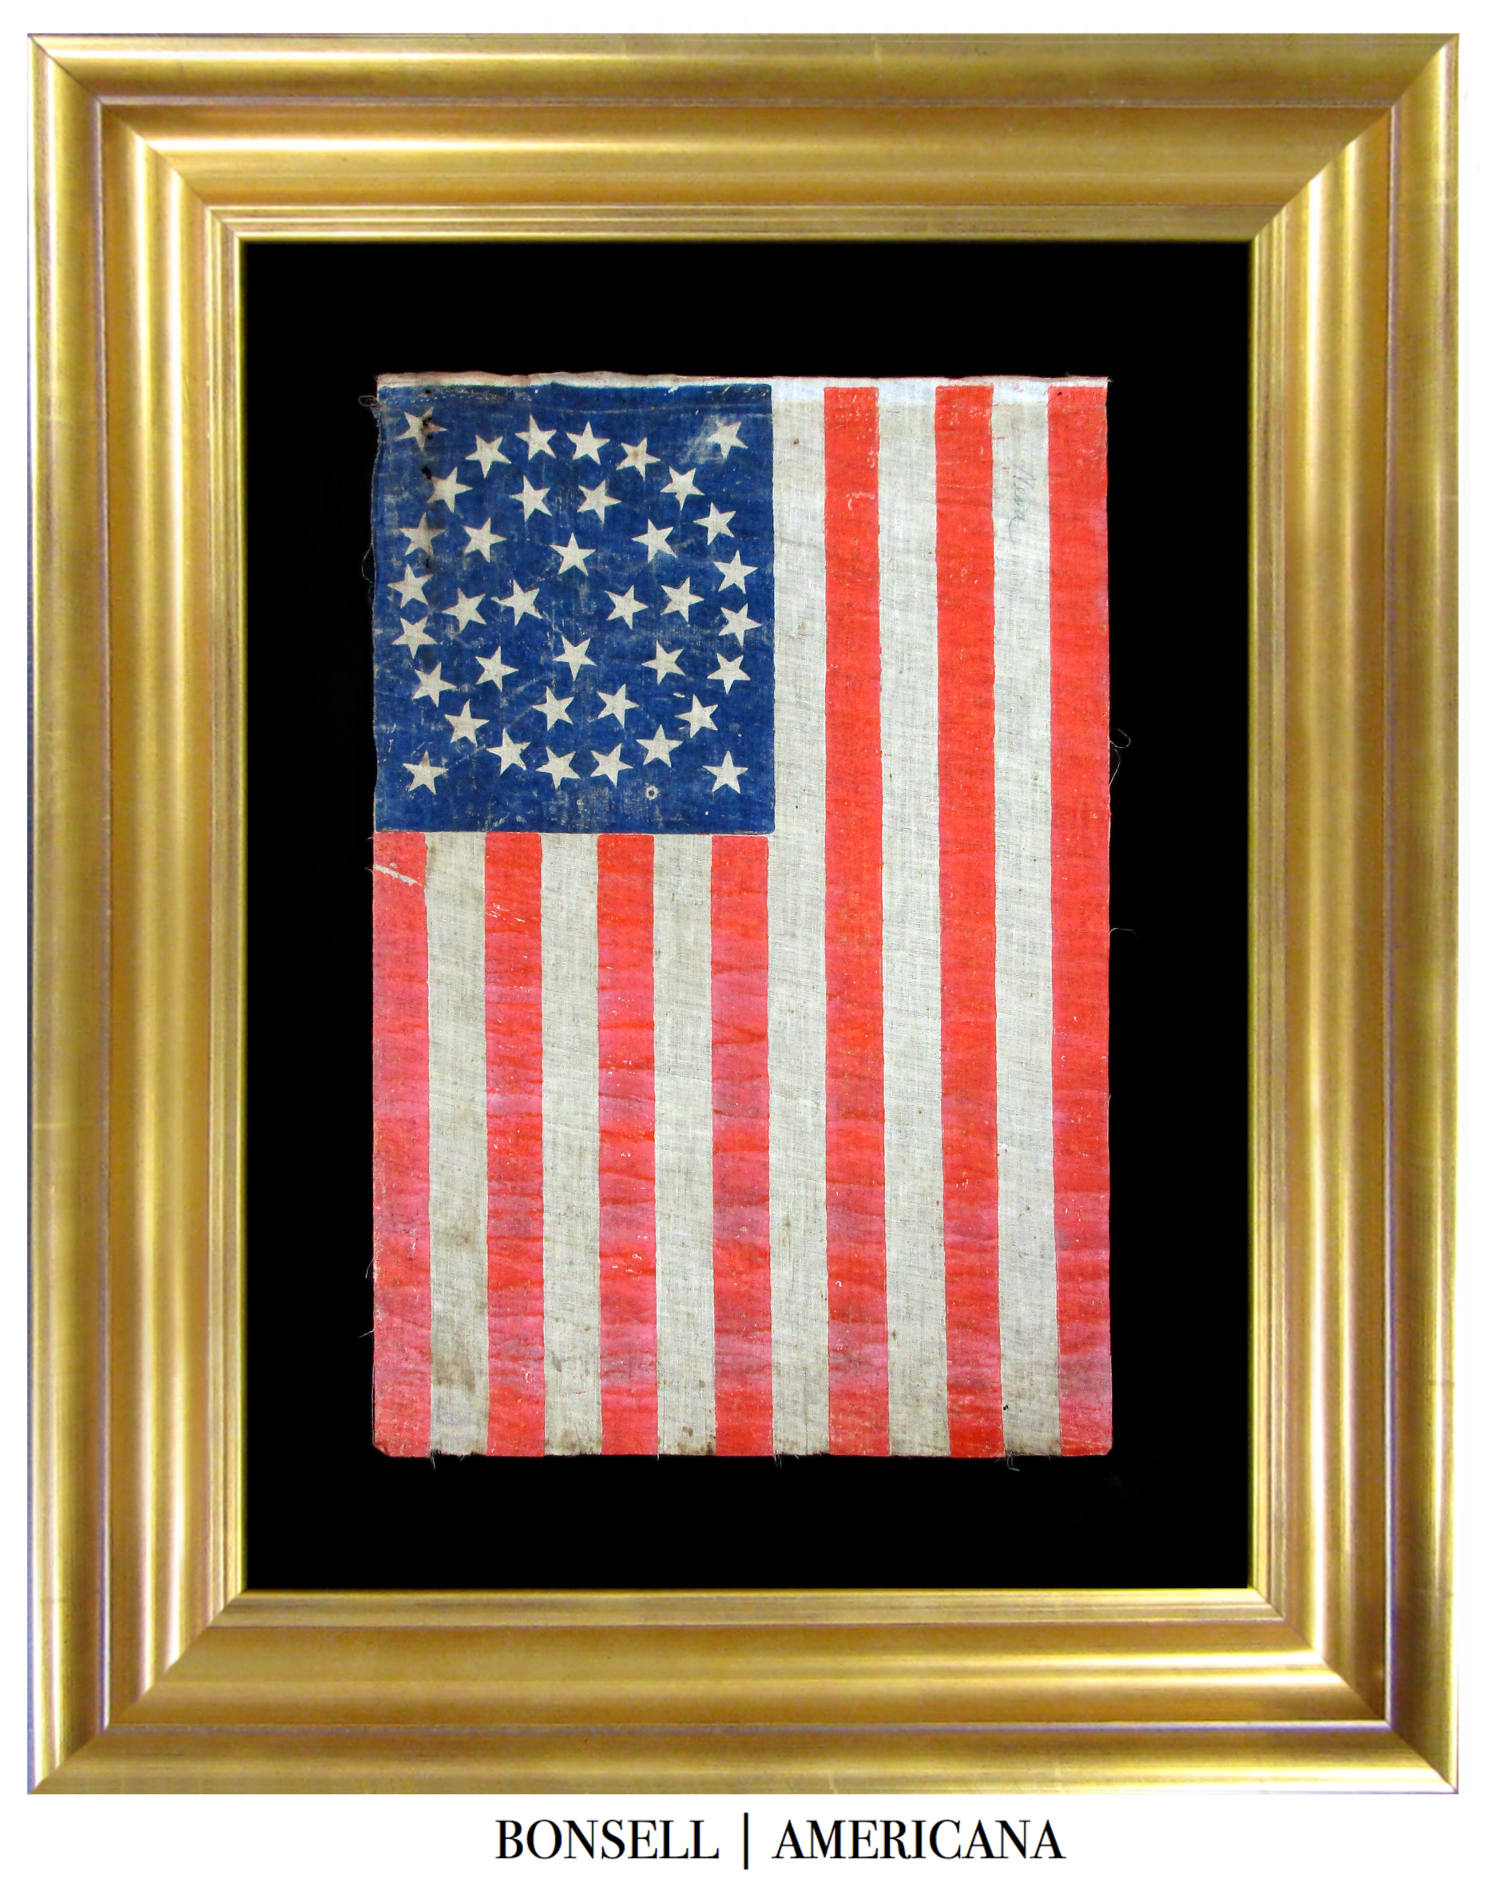 38 Star Antique American Flag with Medallion Star Pattern and Four Flanking Stars